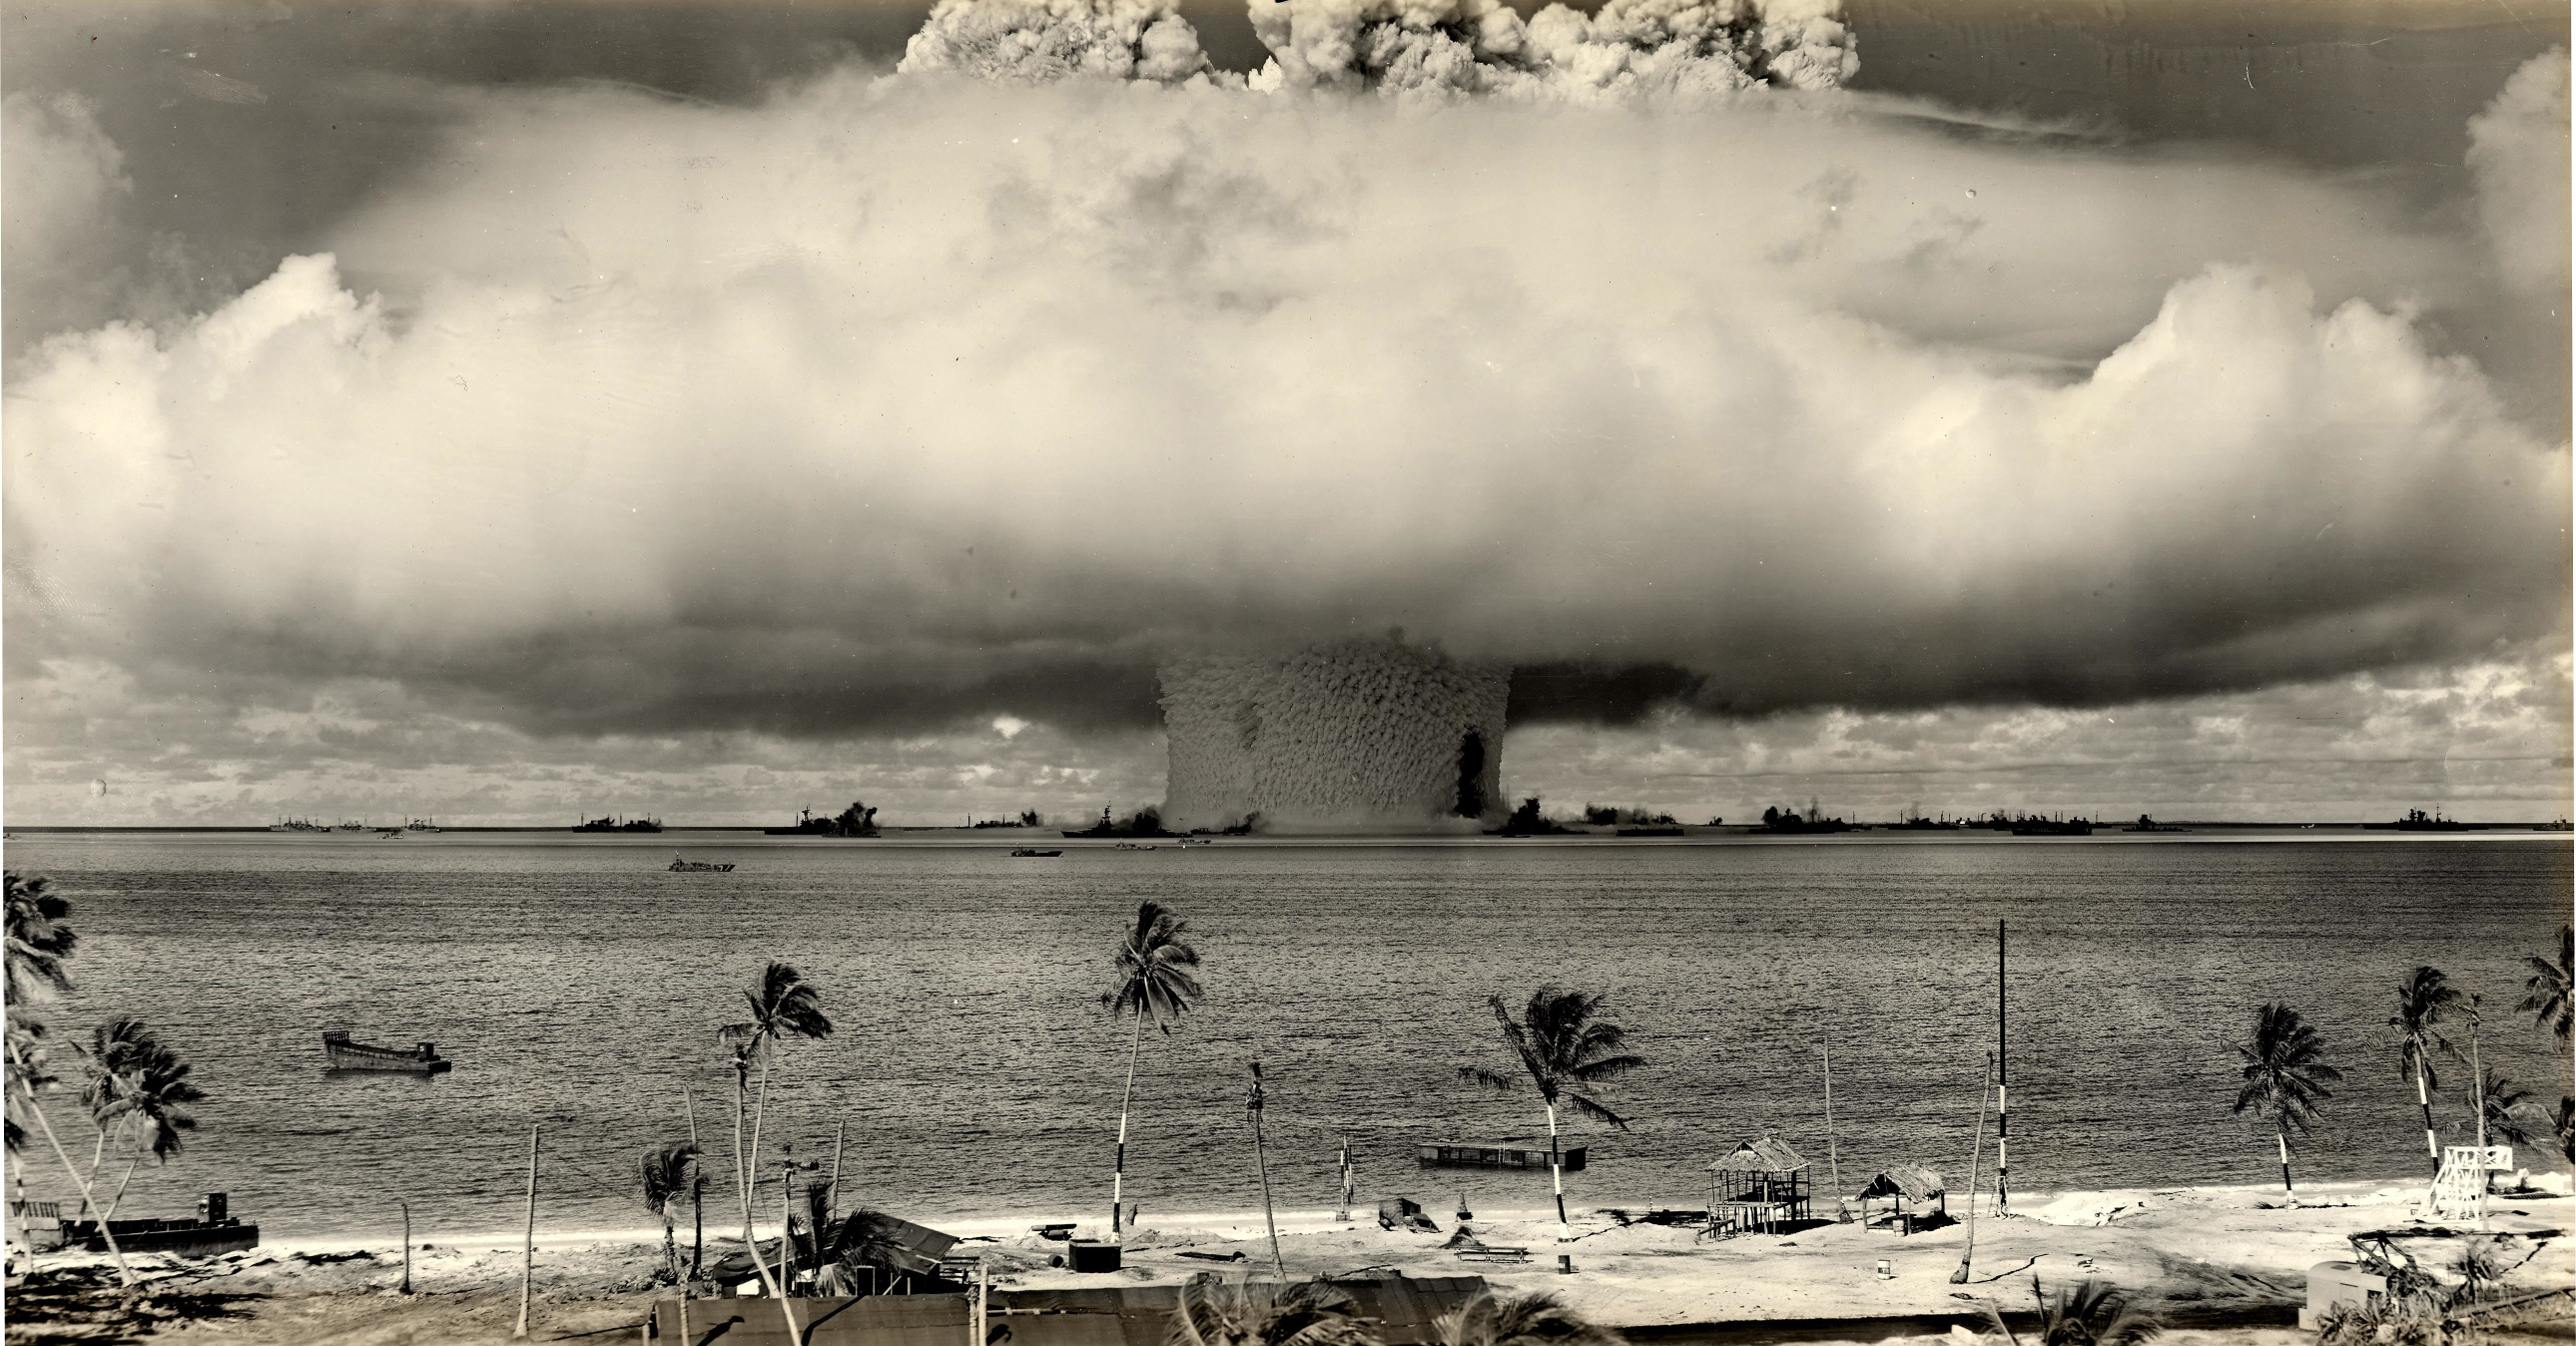 Now Would Be a Pretty Good Time To Launch a Nuclear Attack on Russia